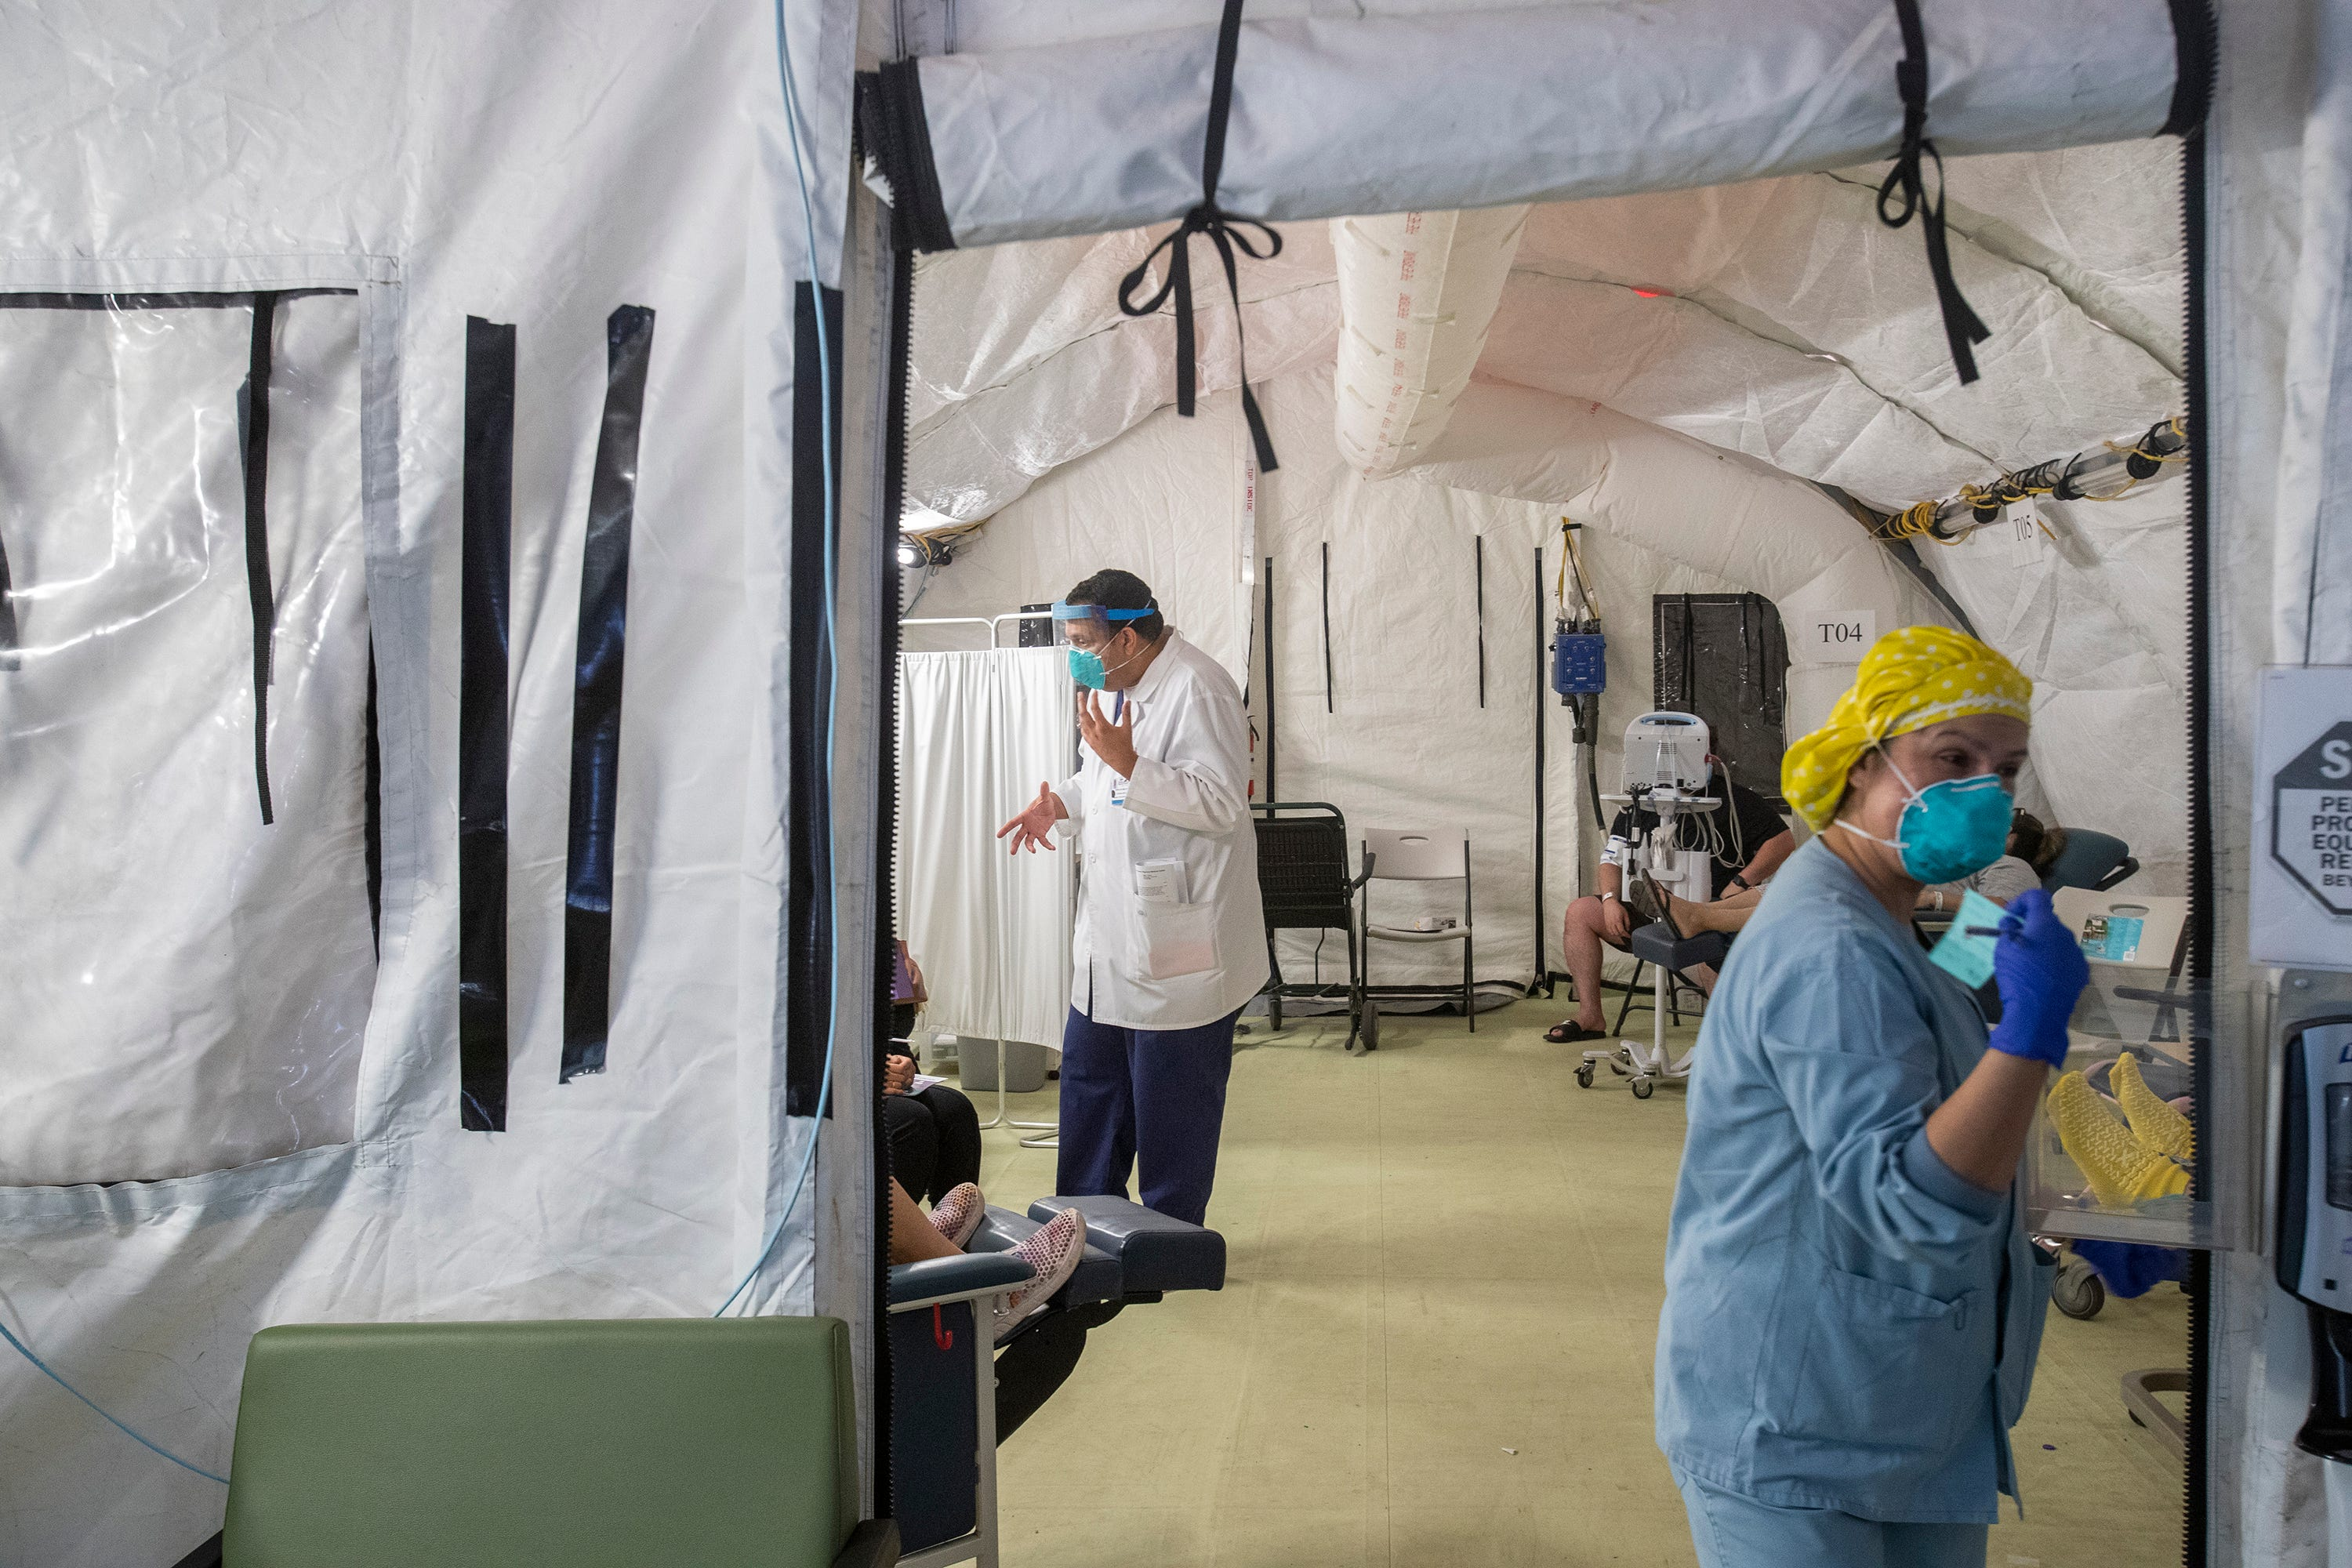 El Centro Regional Medical Center staff attend to suspected COVID-19 patients on May 30, 2020.